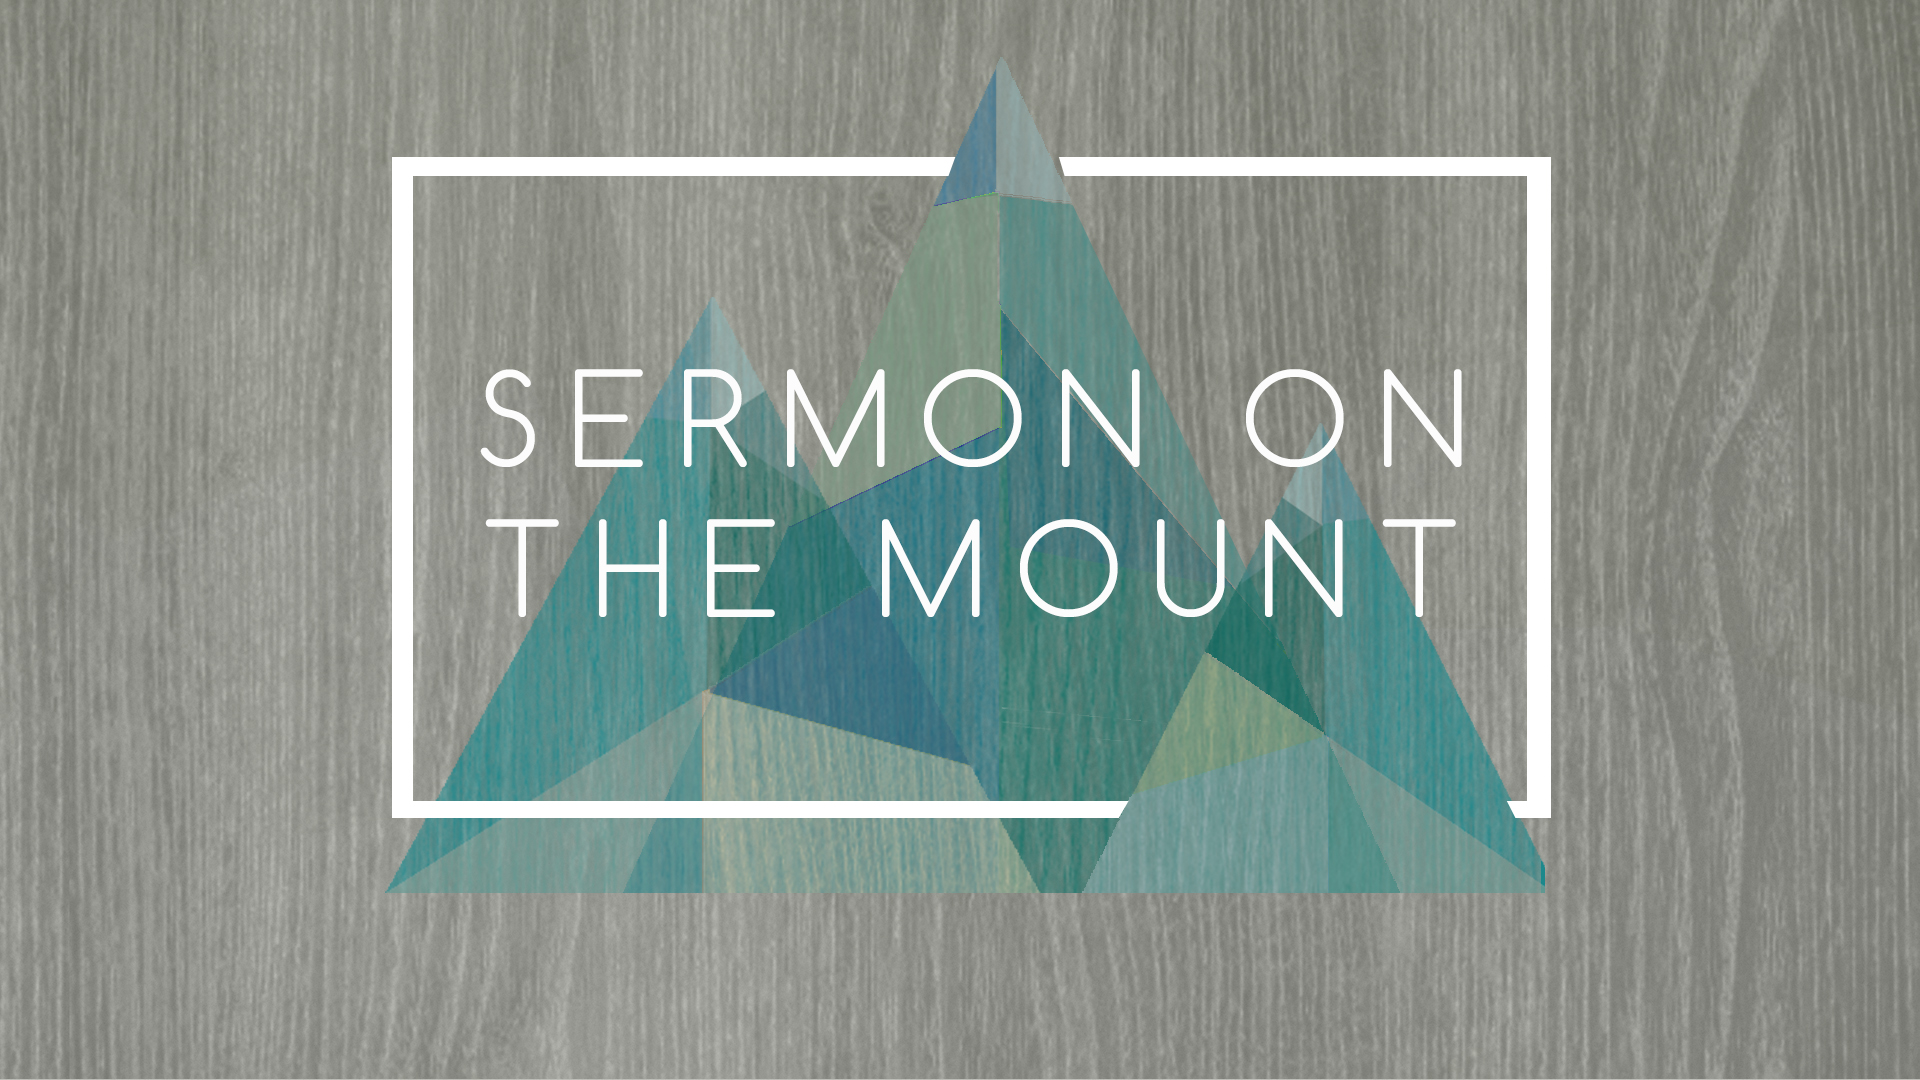 Sermon on the Mount darker bkg